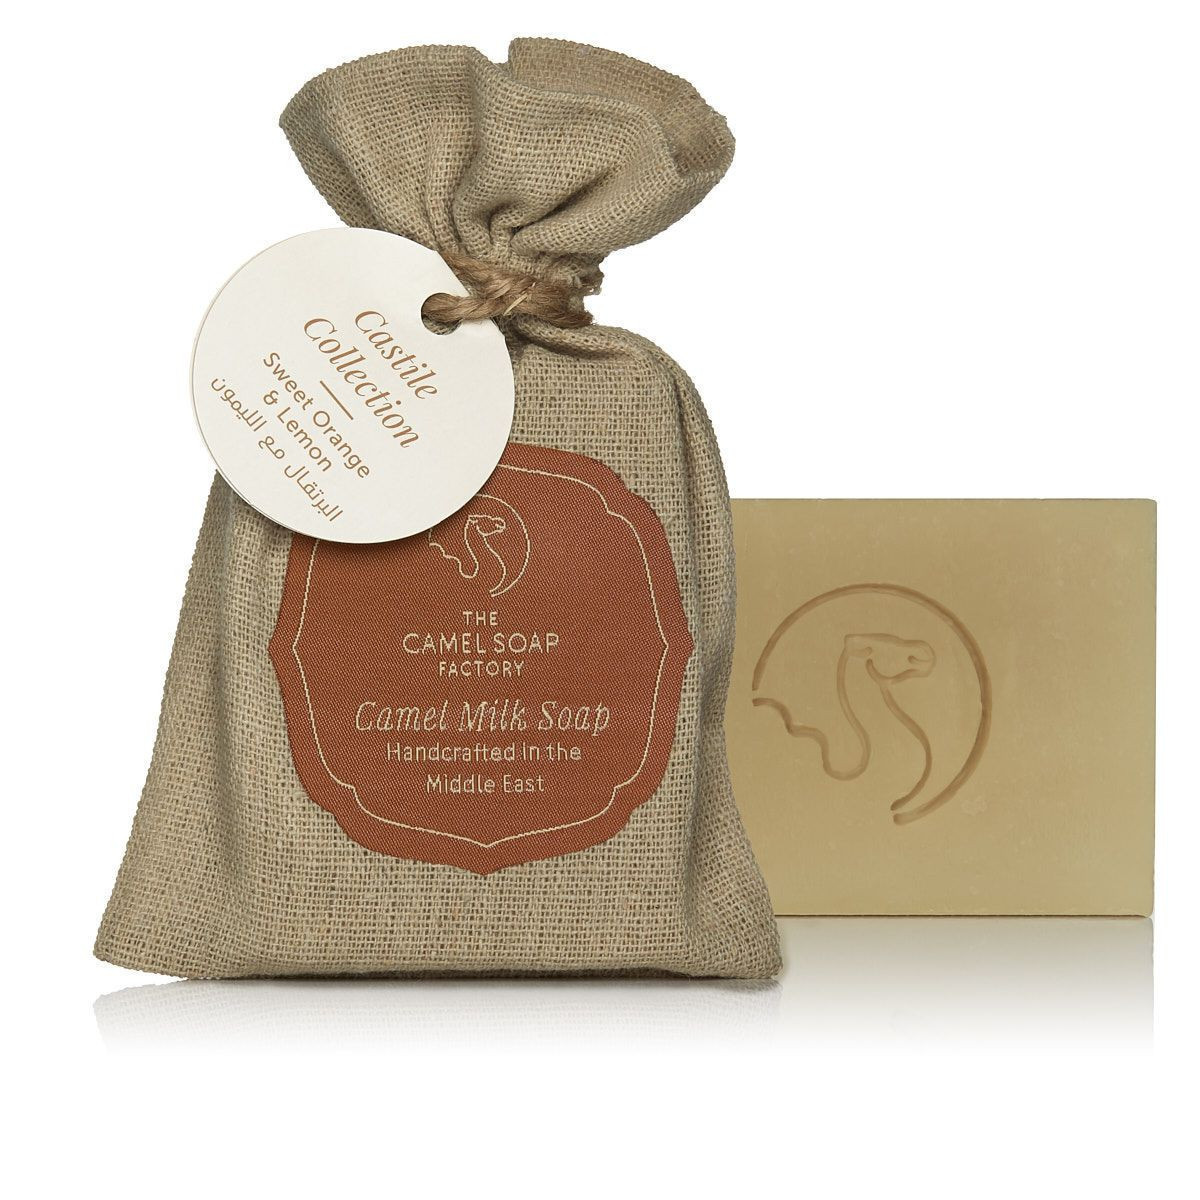 Camel milk soap Orange & Lemon - Castile Collection